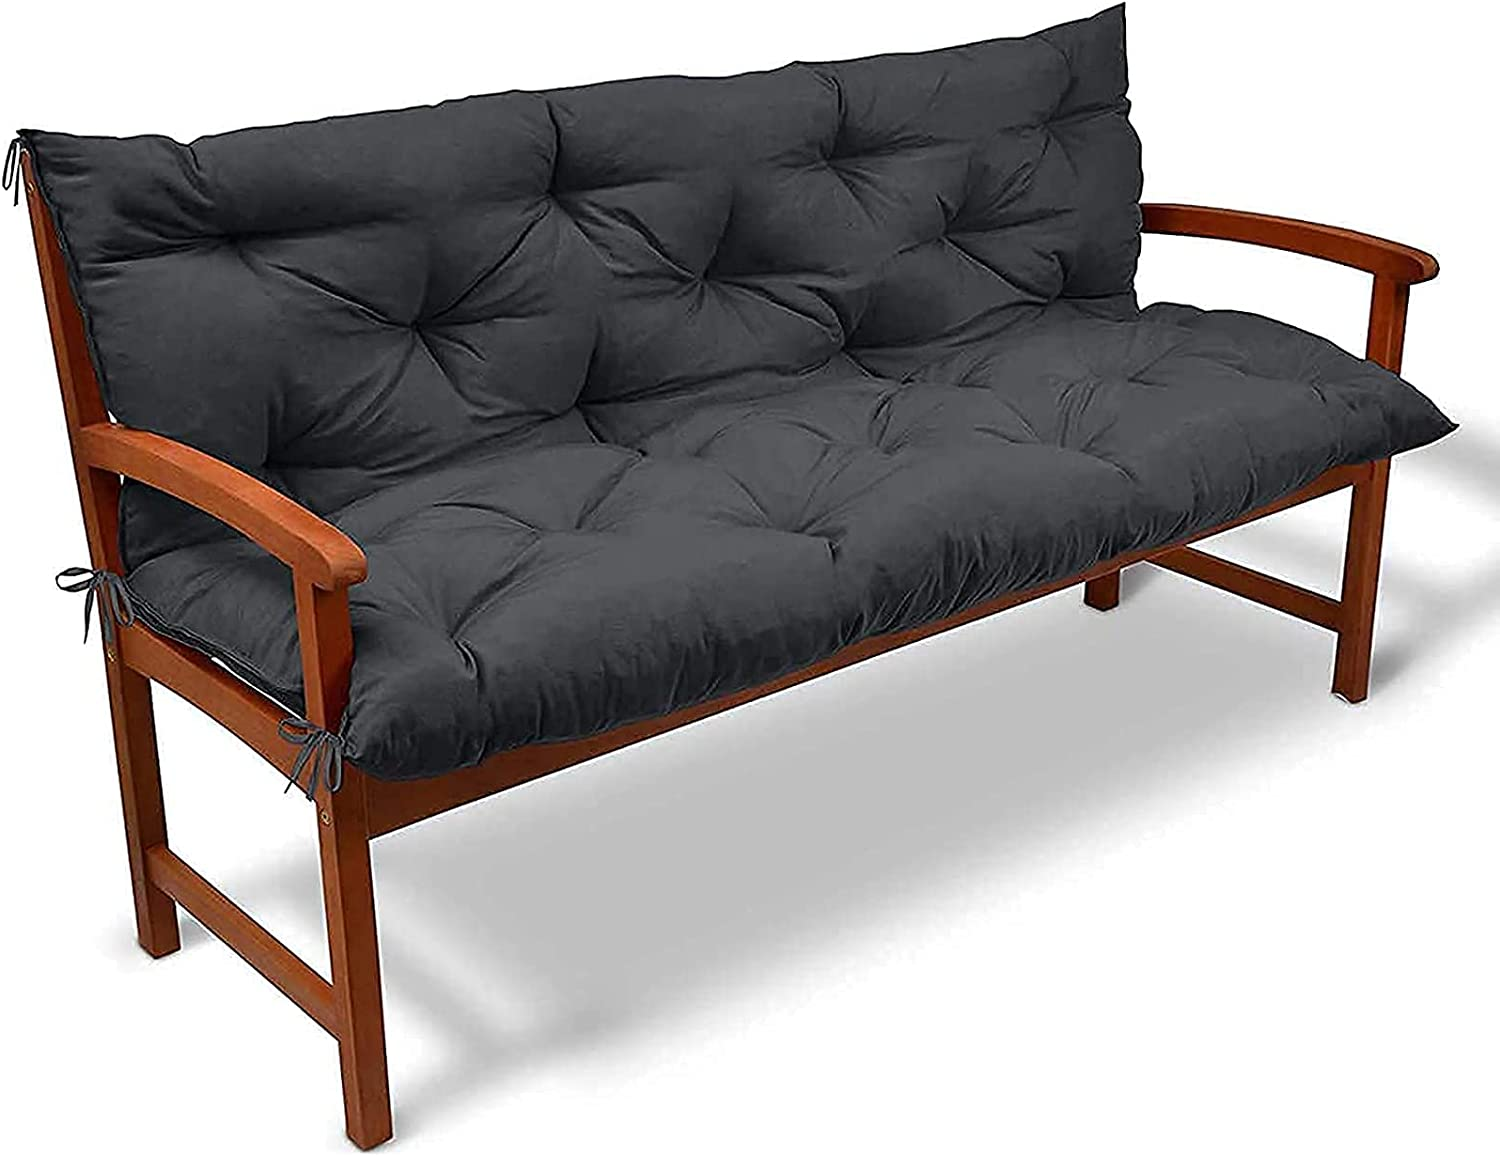 Three Seat Swing Replacement Japan's largest assortment A surprise price is realized Cushions Ben Bench Cushion Outdoor